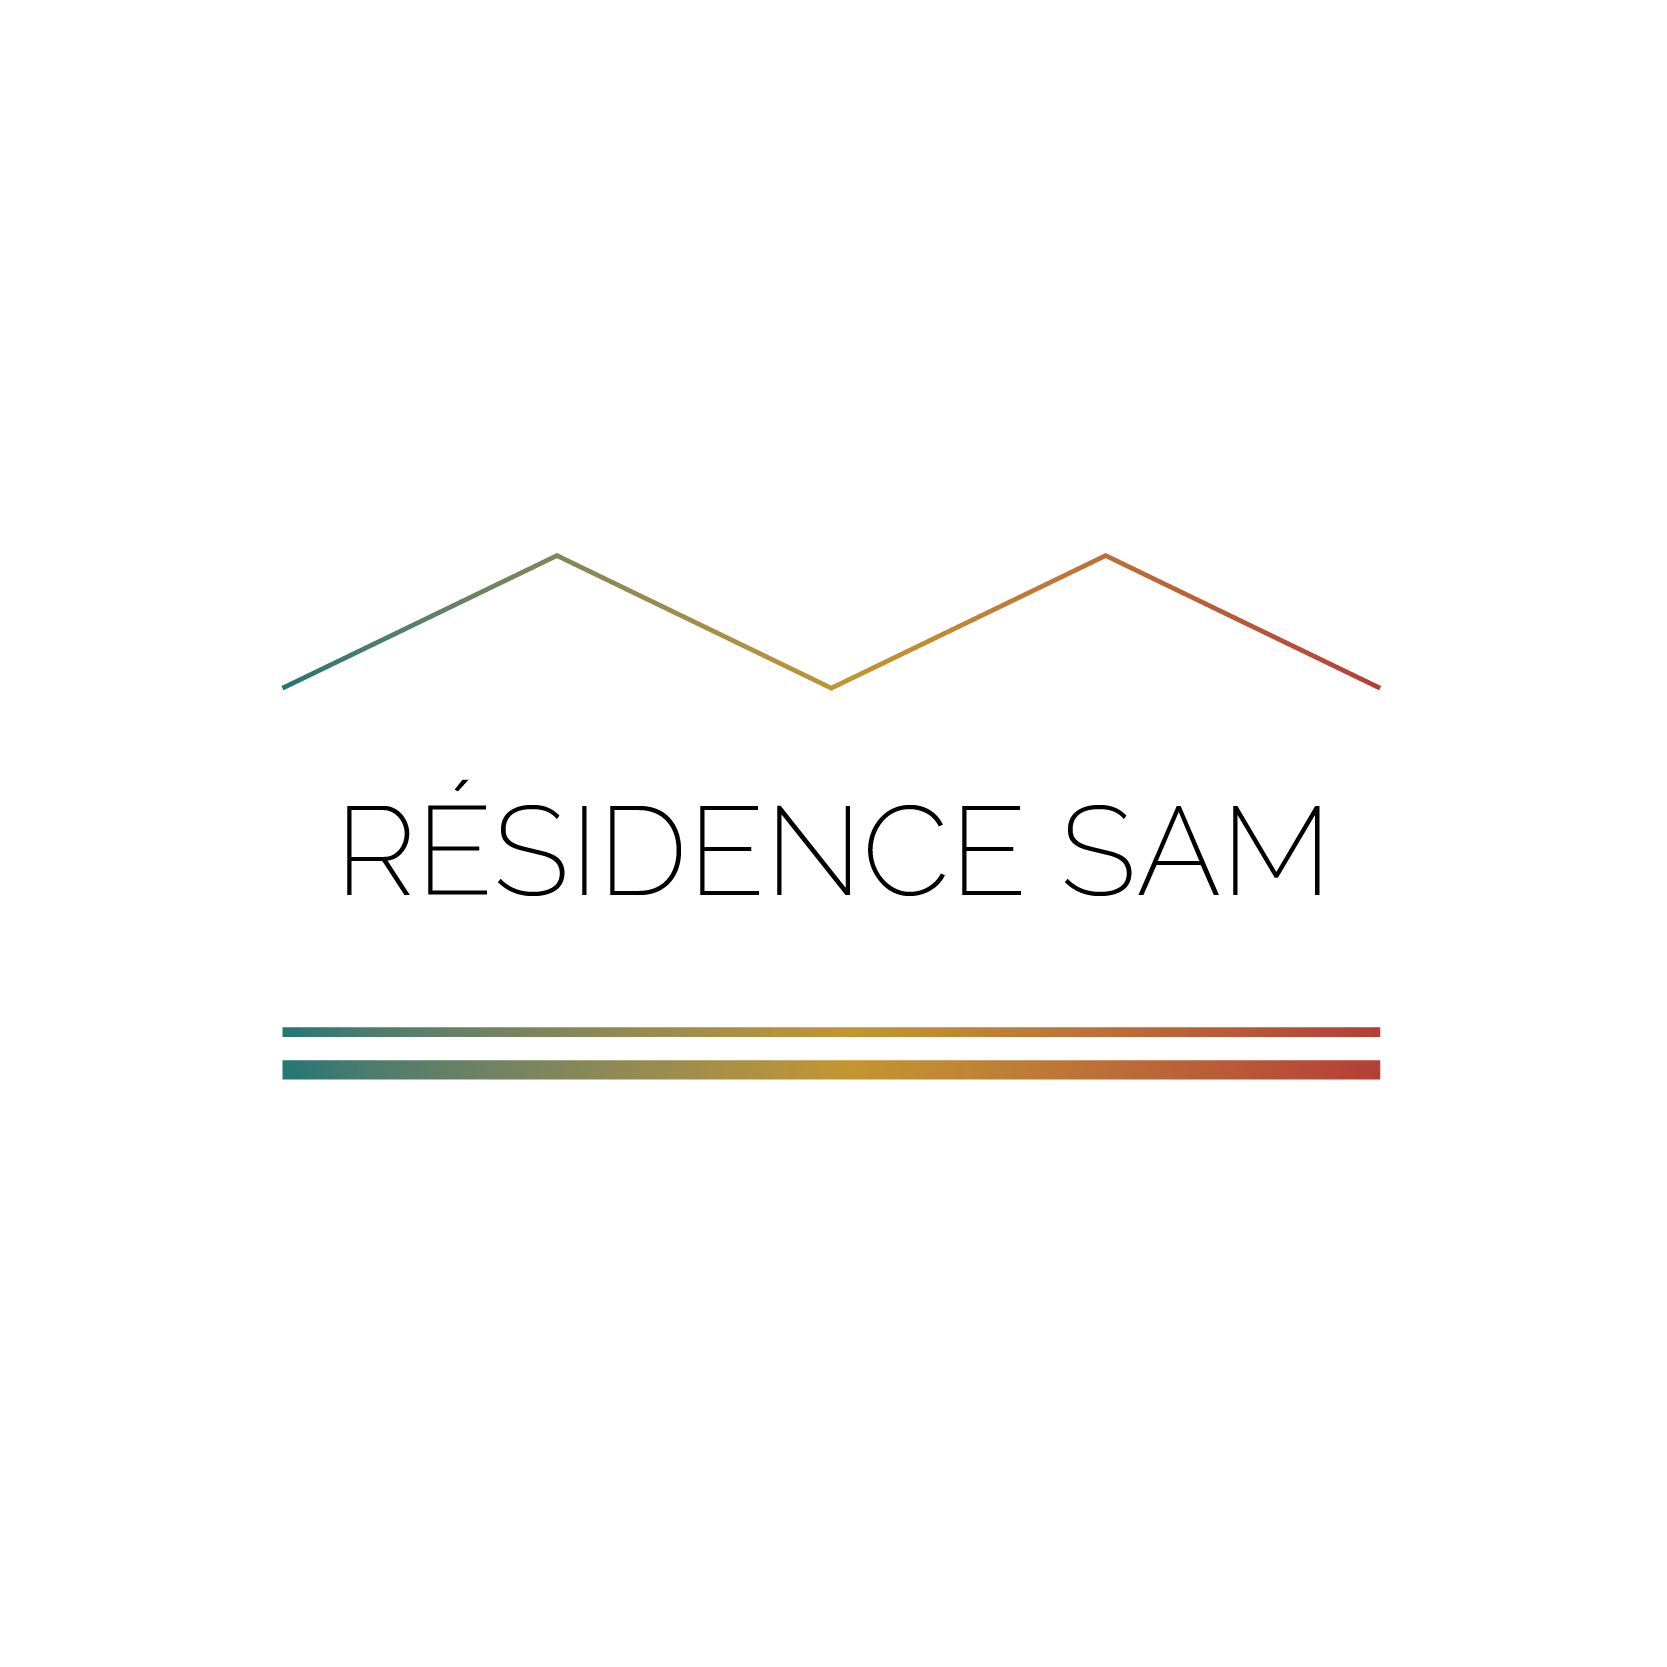 Copie de RÉSIDENTS SAM 2017